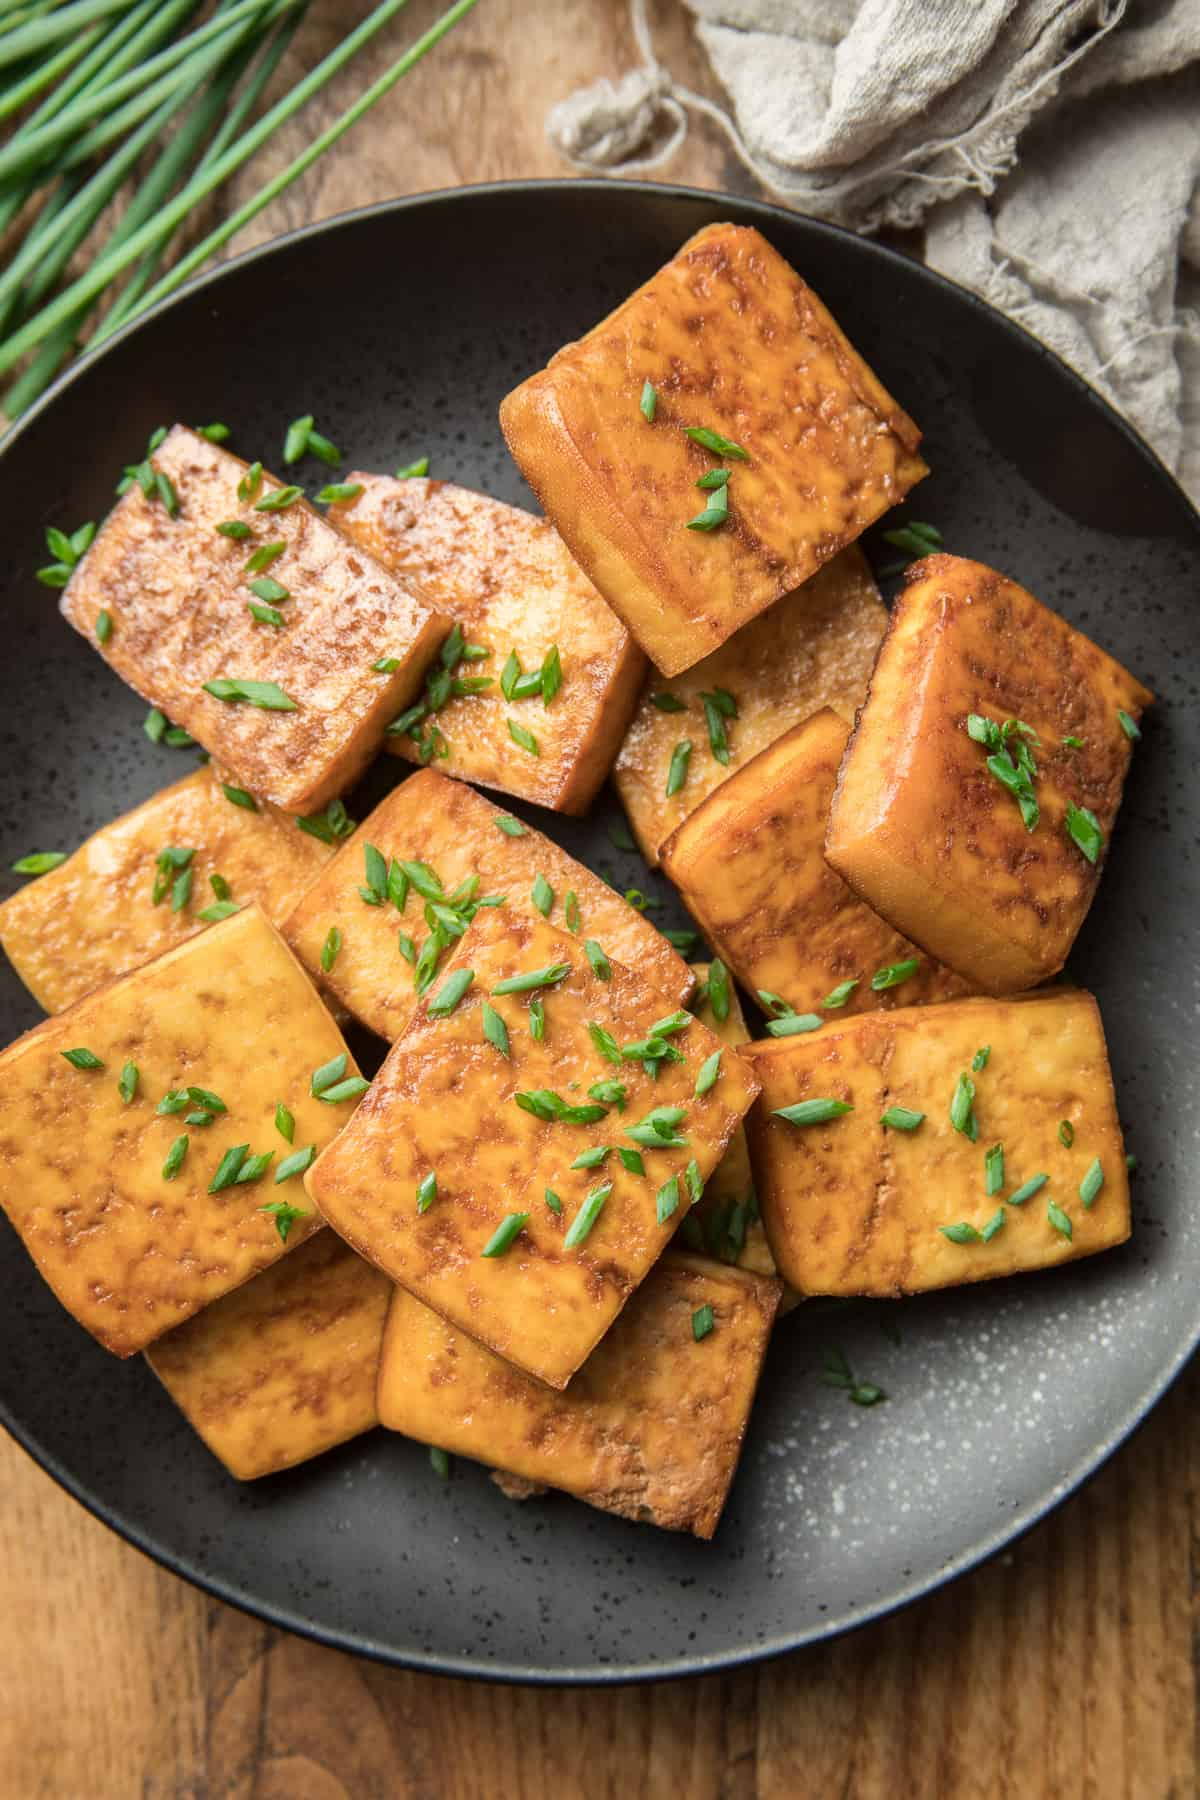 Plate of Smoked Tofu on a Wooden Surface with Chives